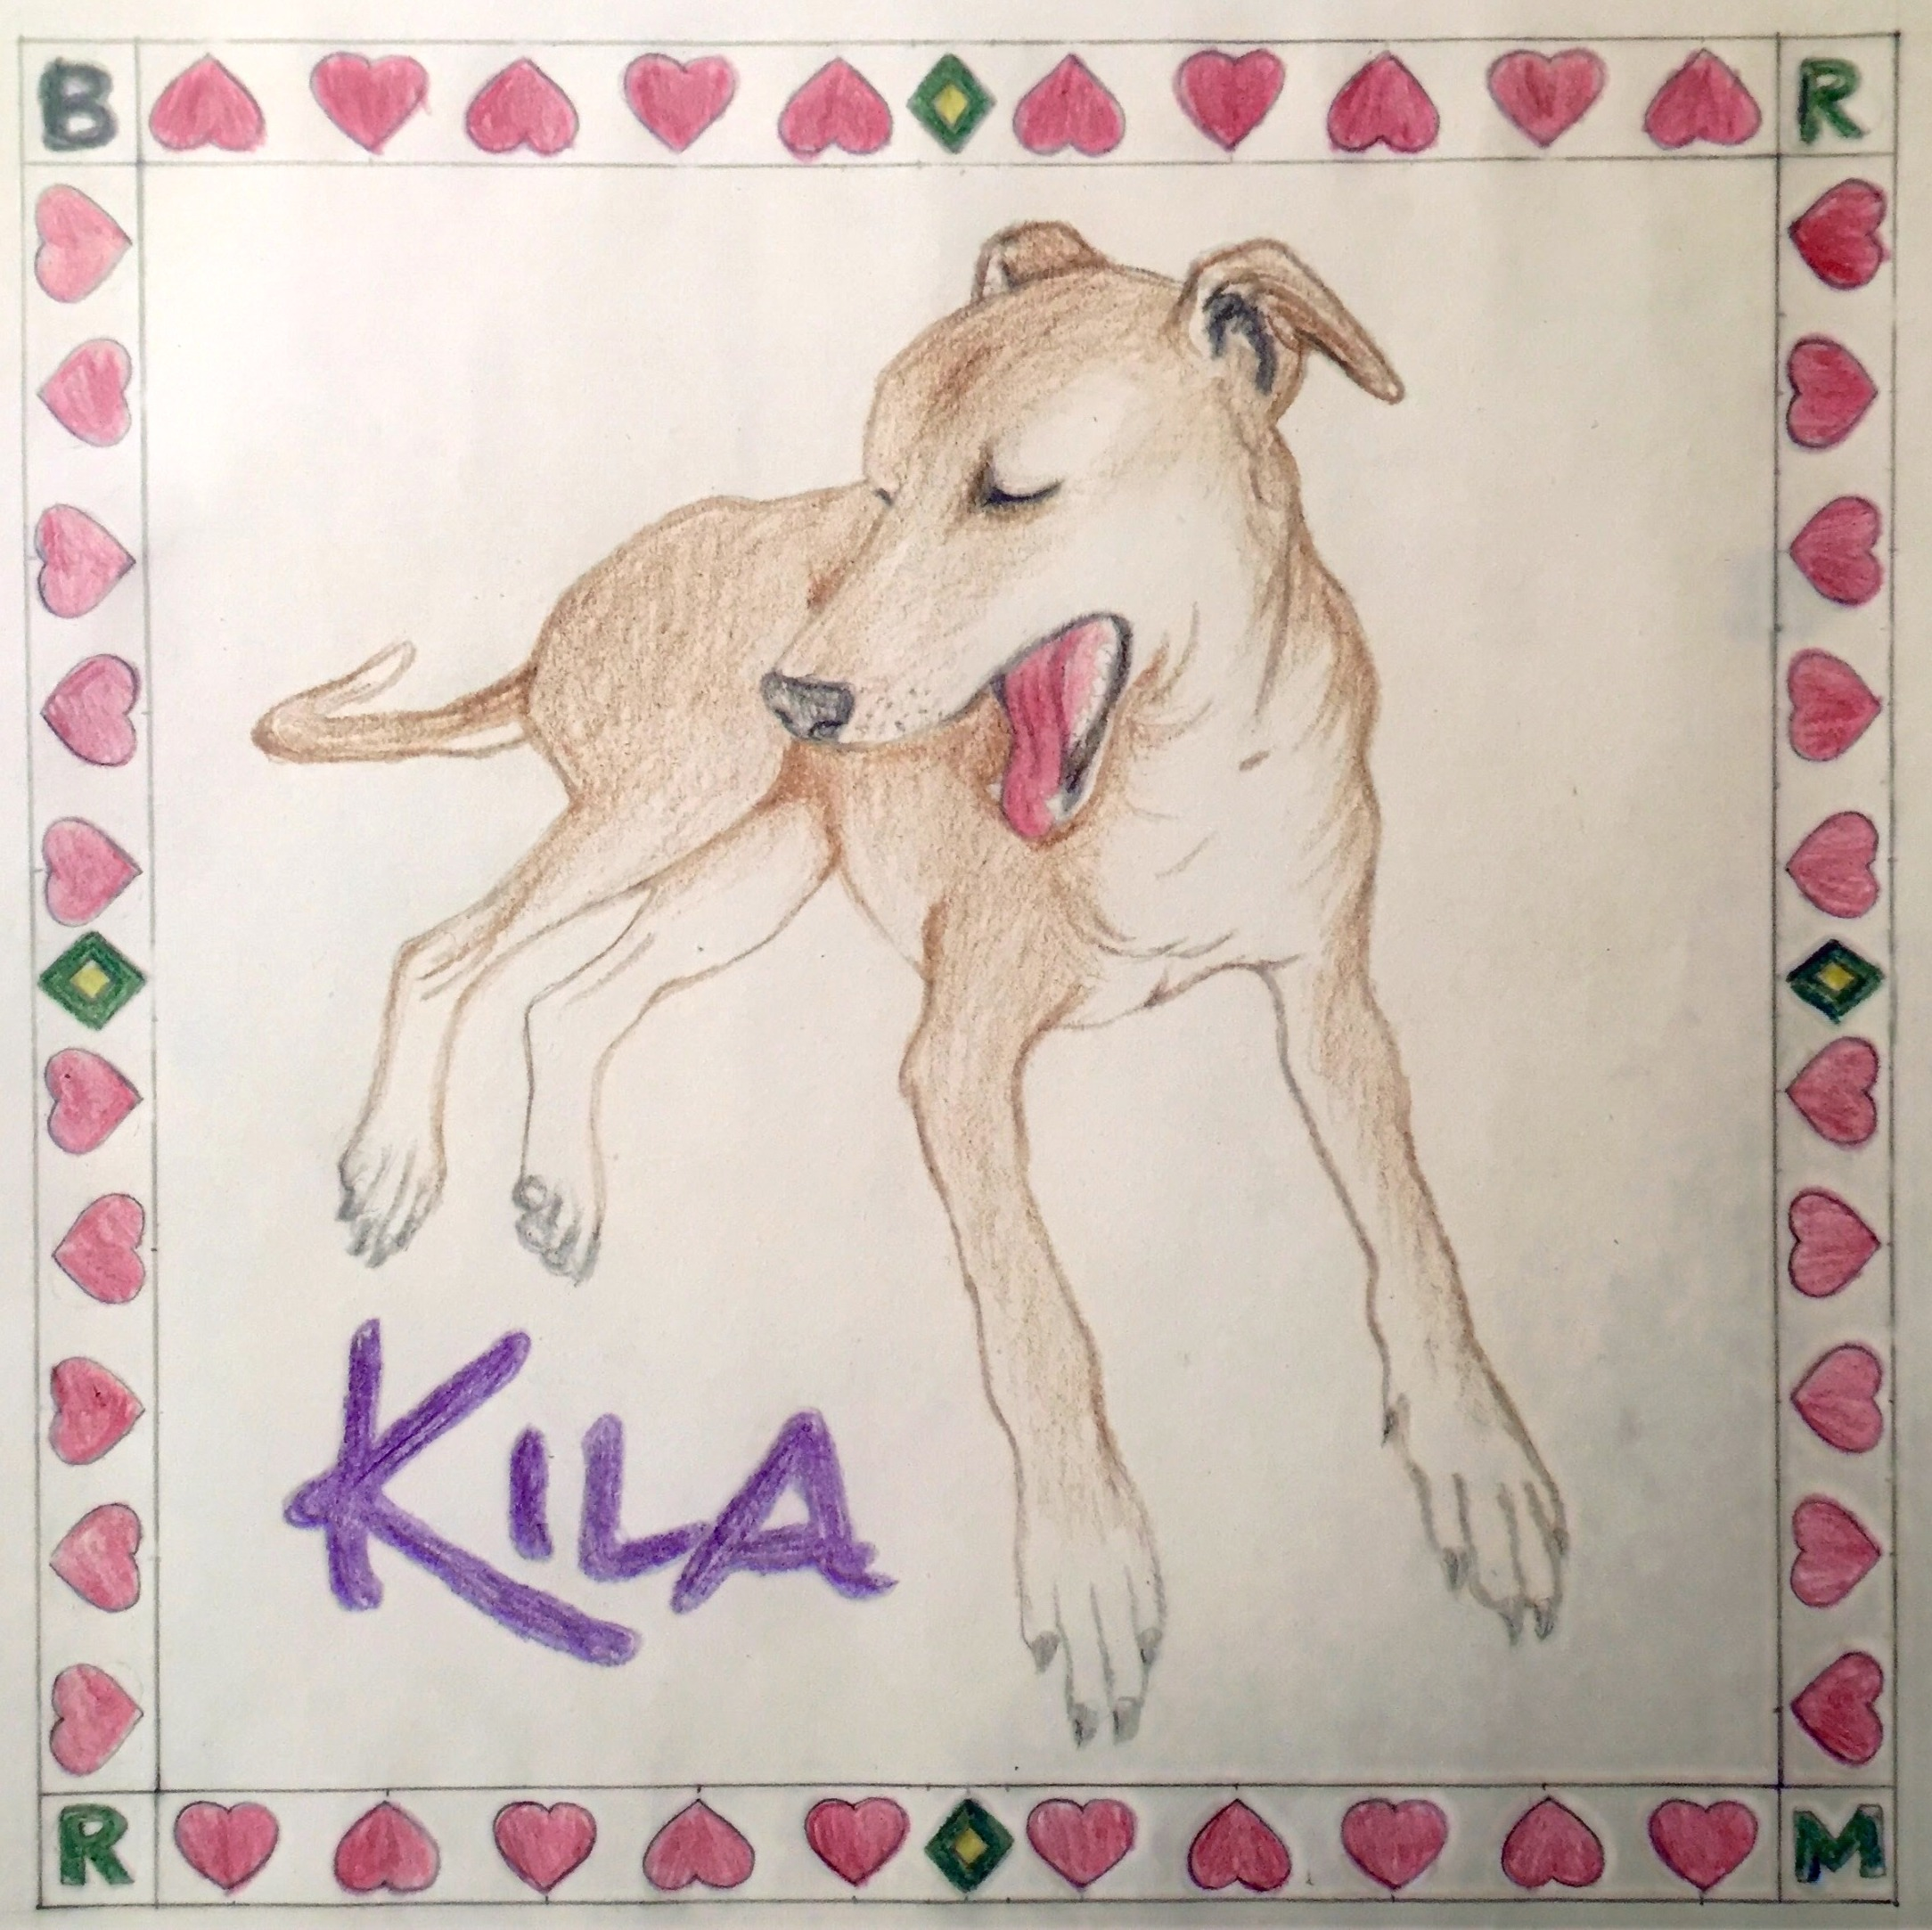 Portrait of Kila